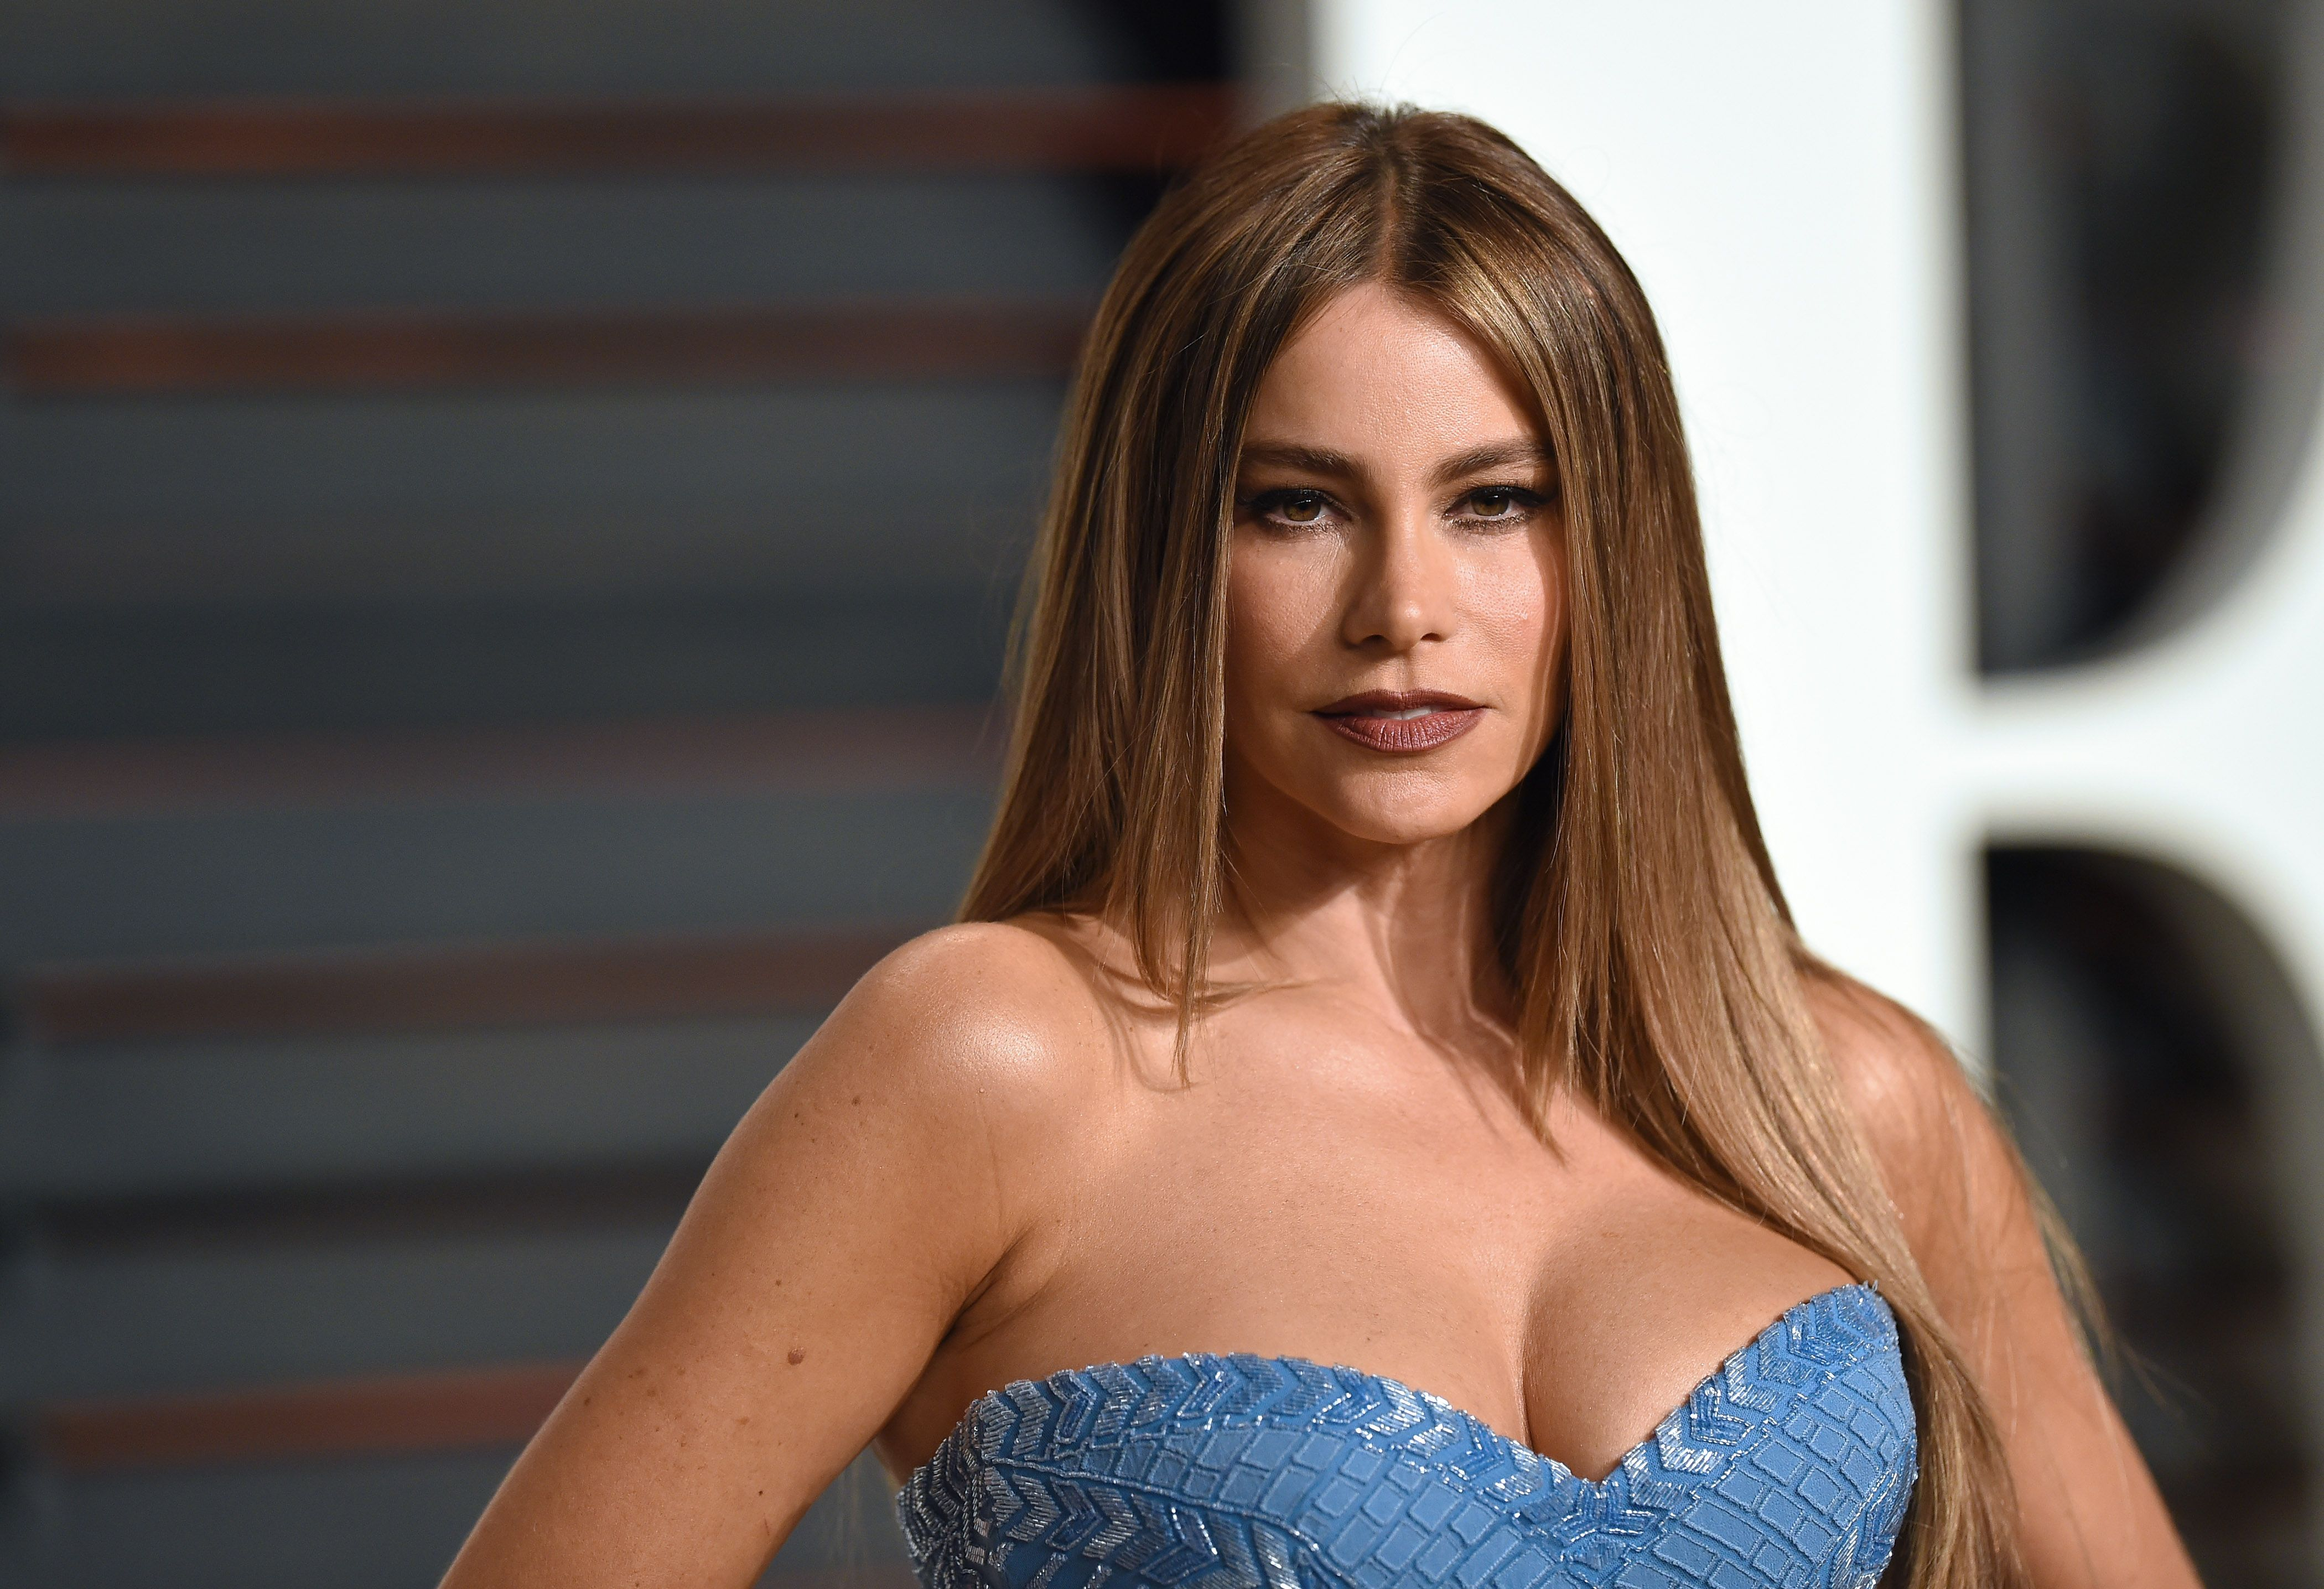 Modern Family Actress Shares Her Biggest Beauty Regret - Sofia Vergara's Biggest Beauty Regret Is Not Using Sunscreen on Her Chest